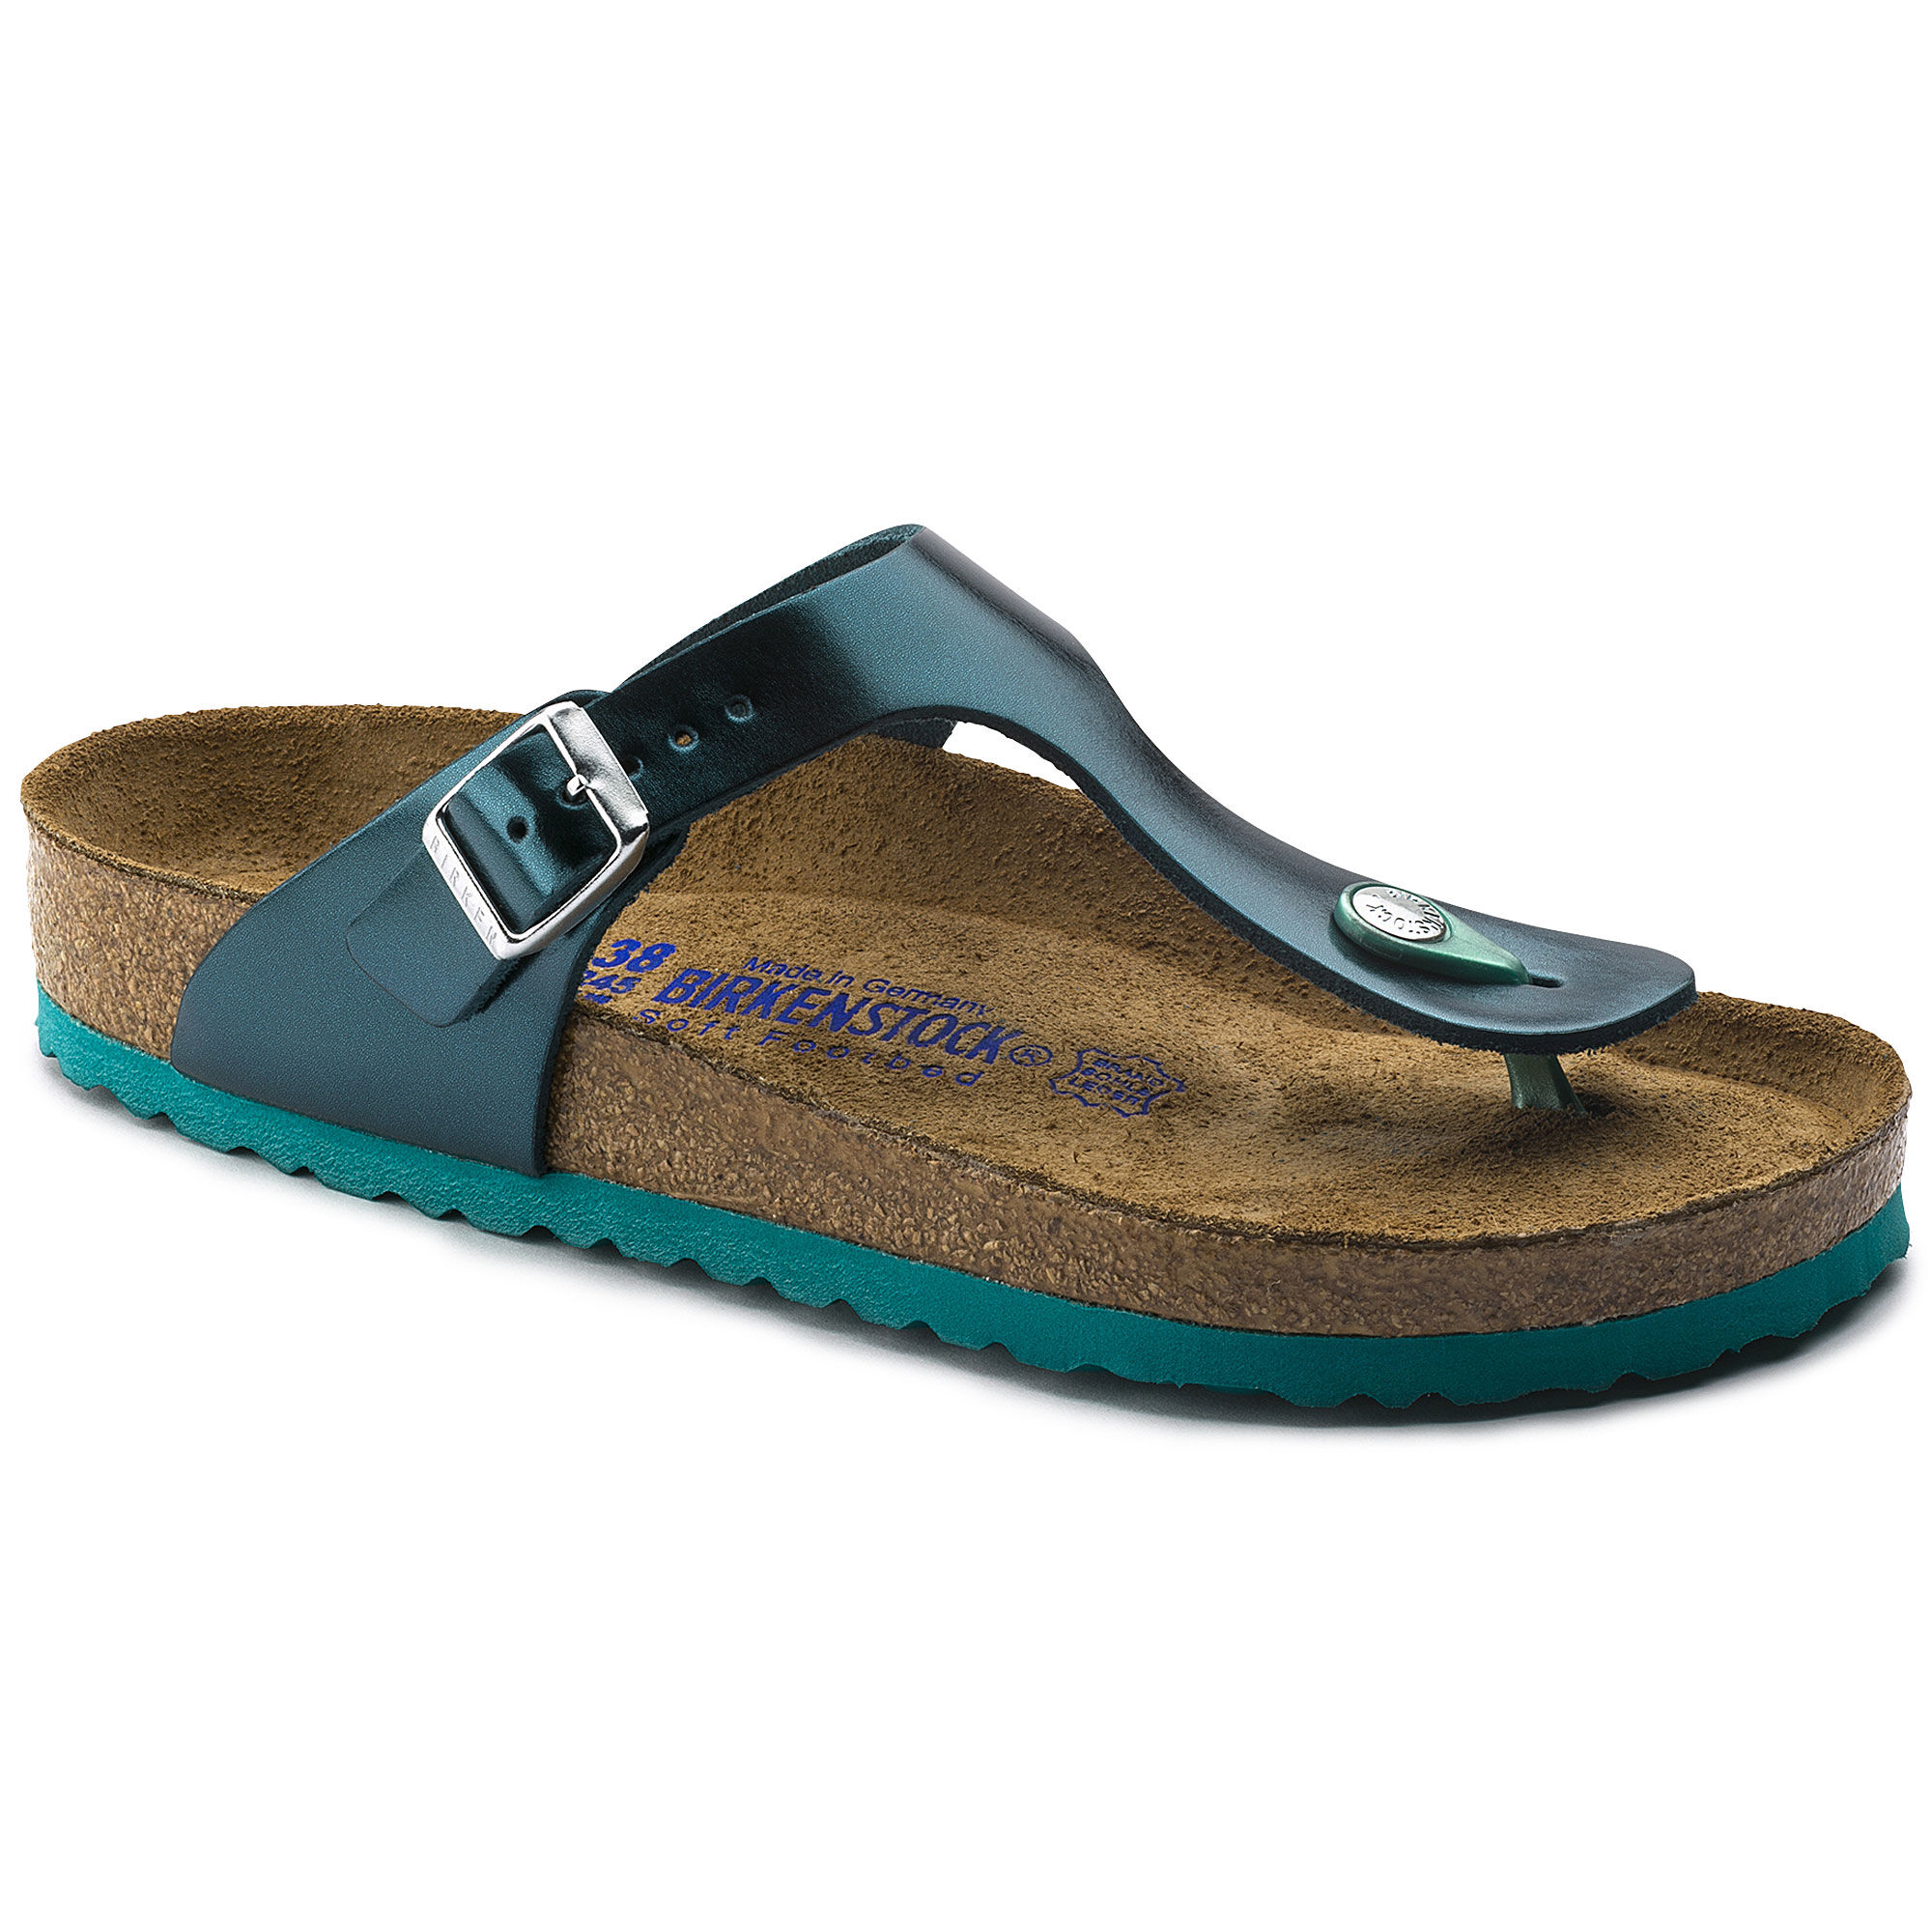 Gizeh Natural Leather Metallic Green